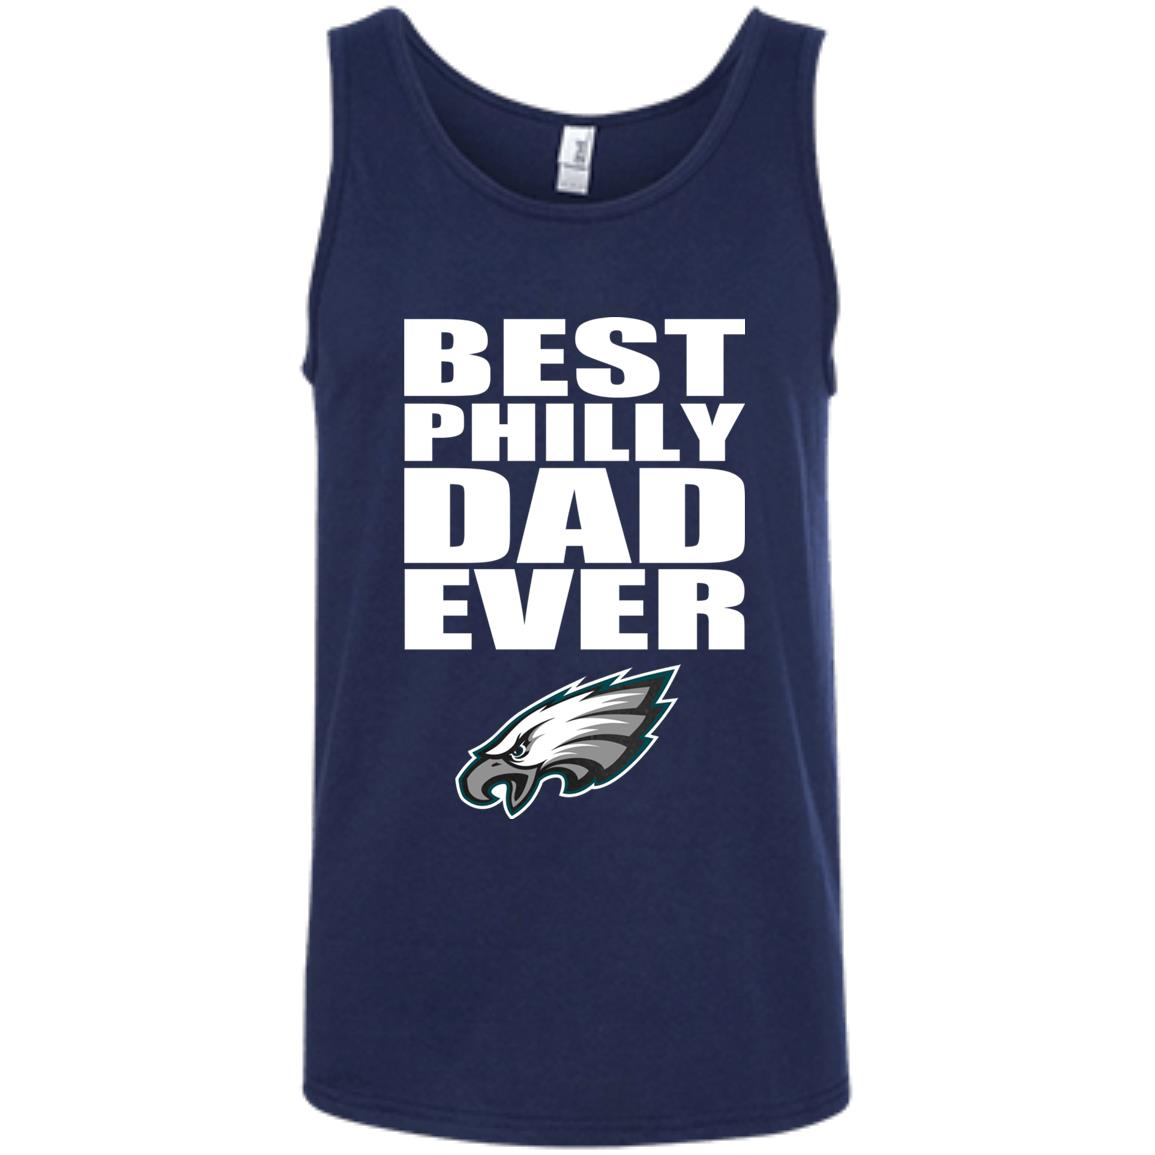 separation shoes 13a1e 18621 Best Philly Dad Ever Philadelphia Eagles Father's Day Gift Tank Top